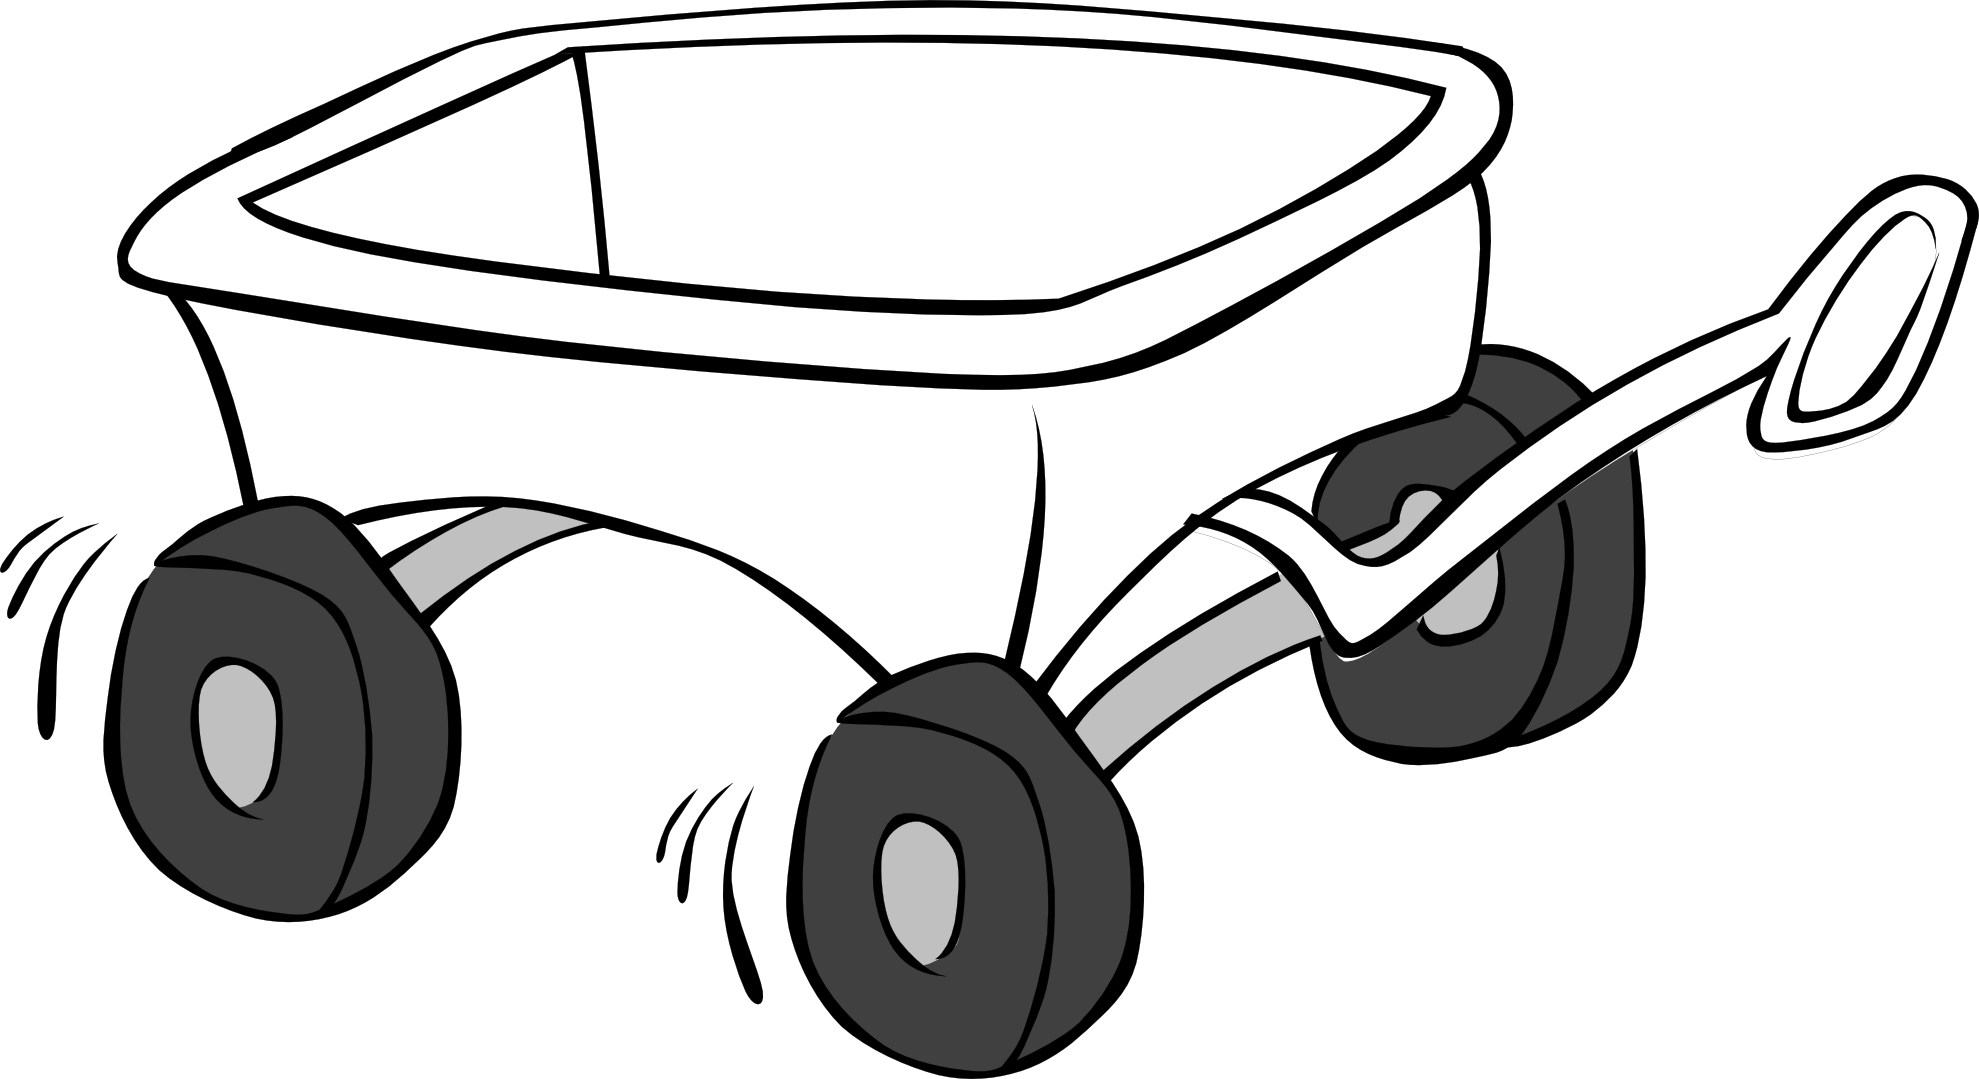 Black White An D Tractor Pulling Wagon : Kids wagon black white clipart panda free images